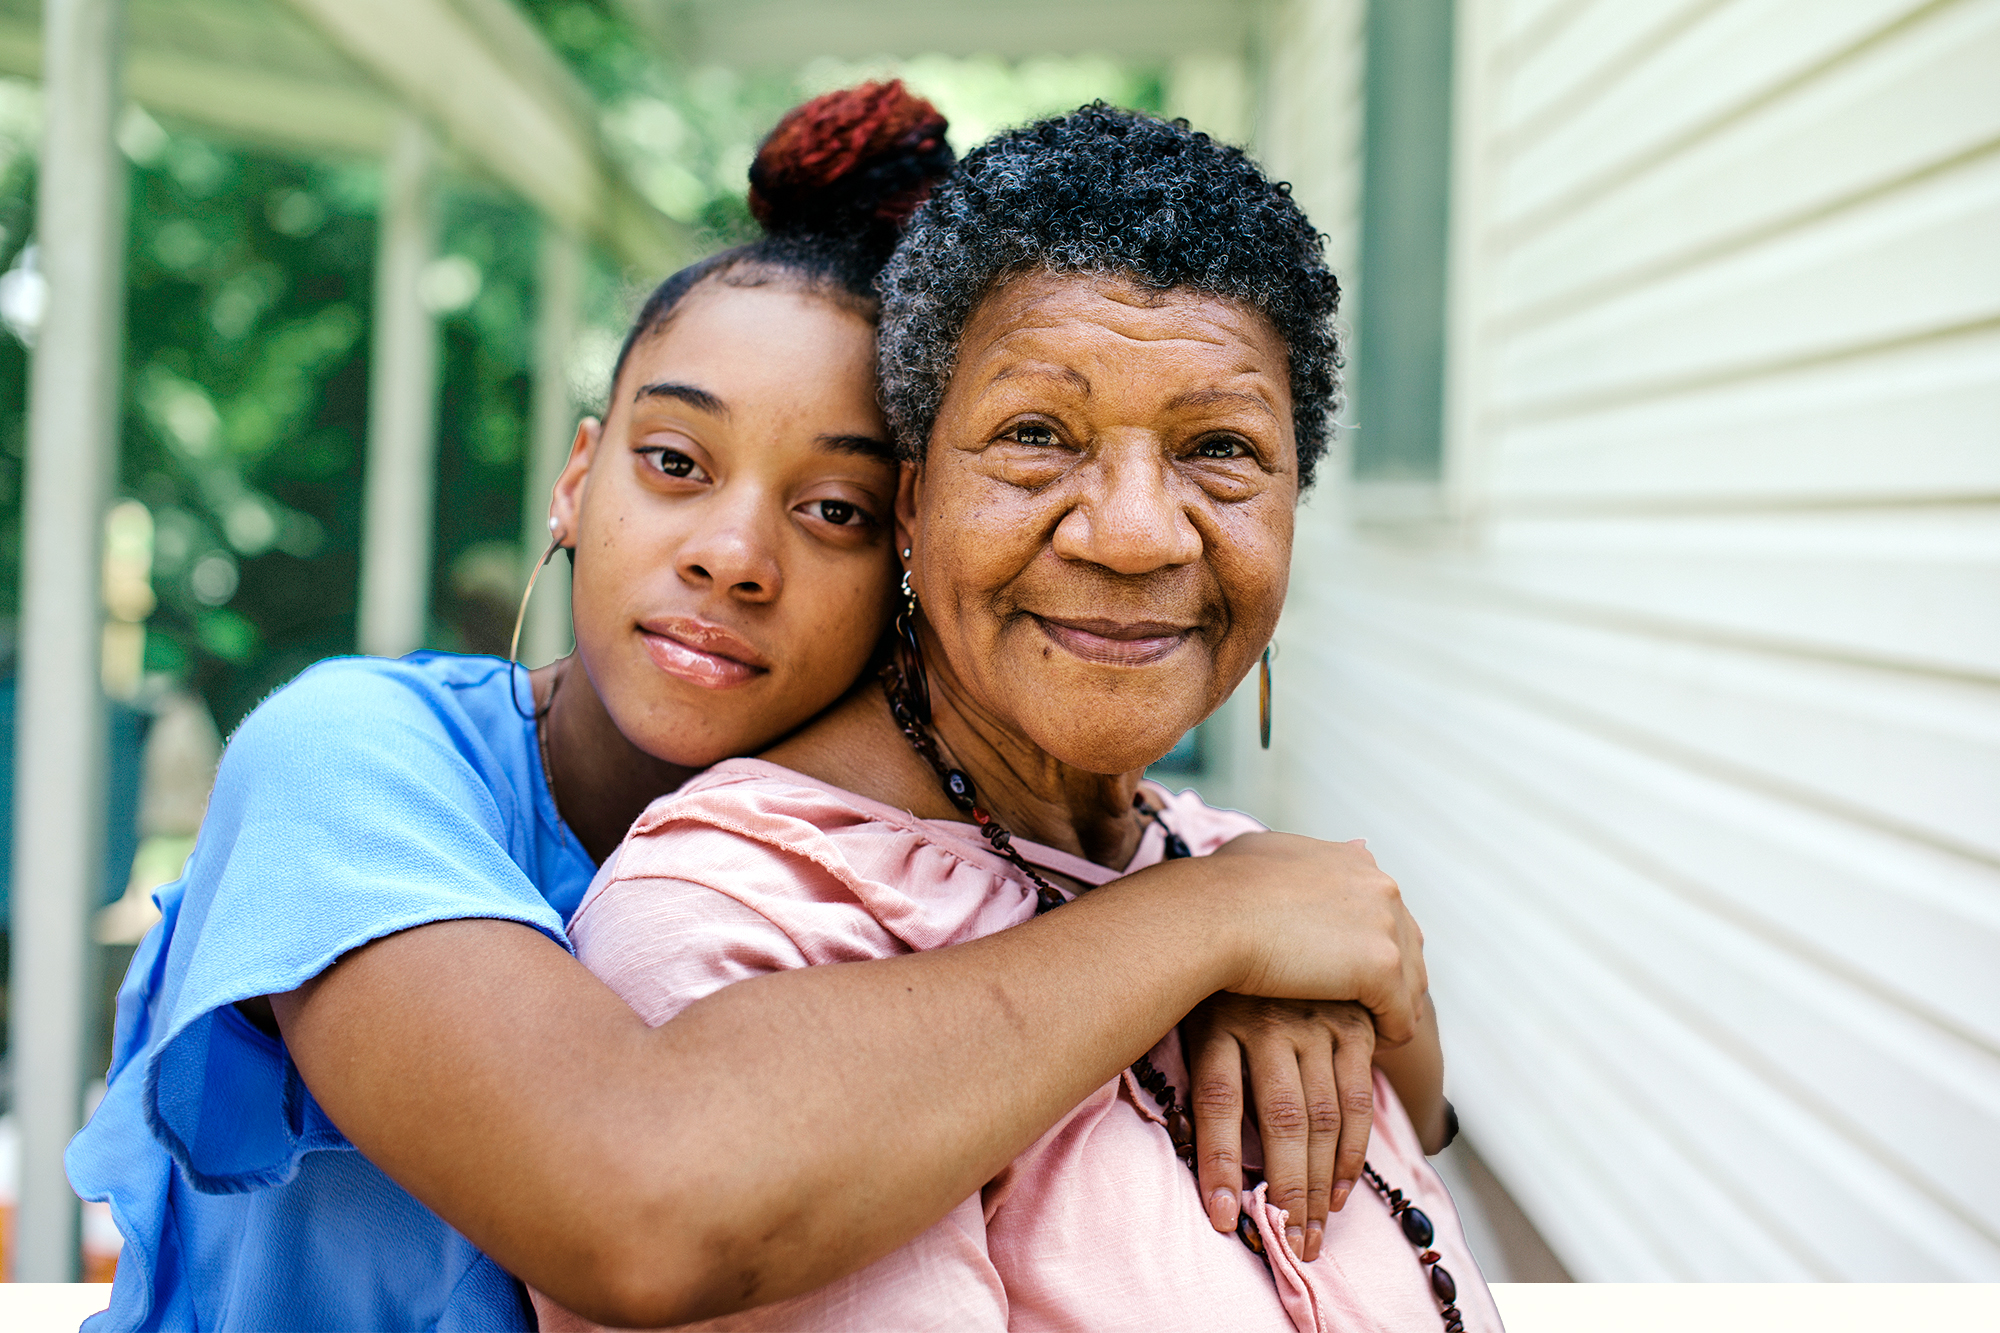 Portrait of grandmother with teenager granddaughter